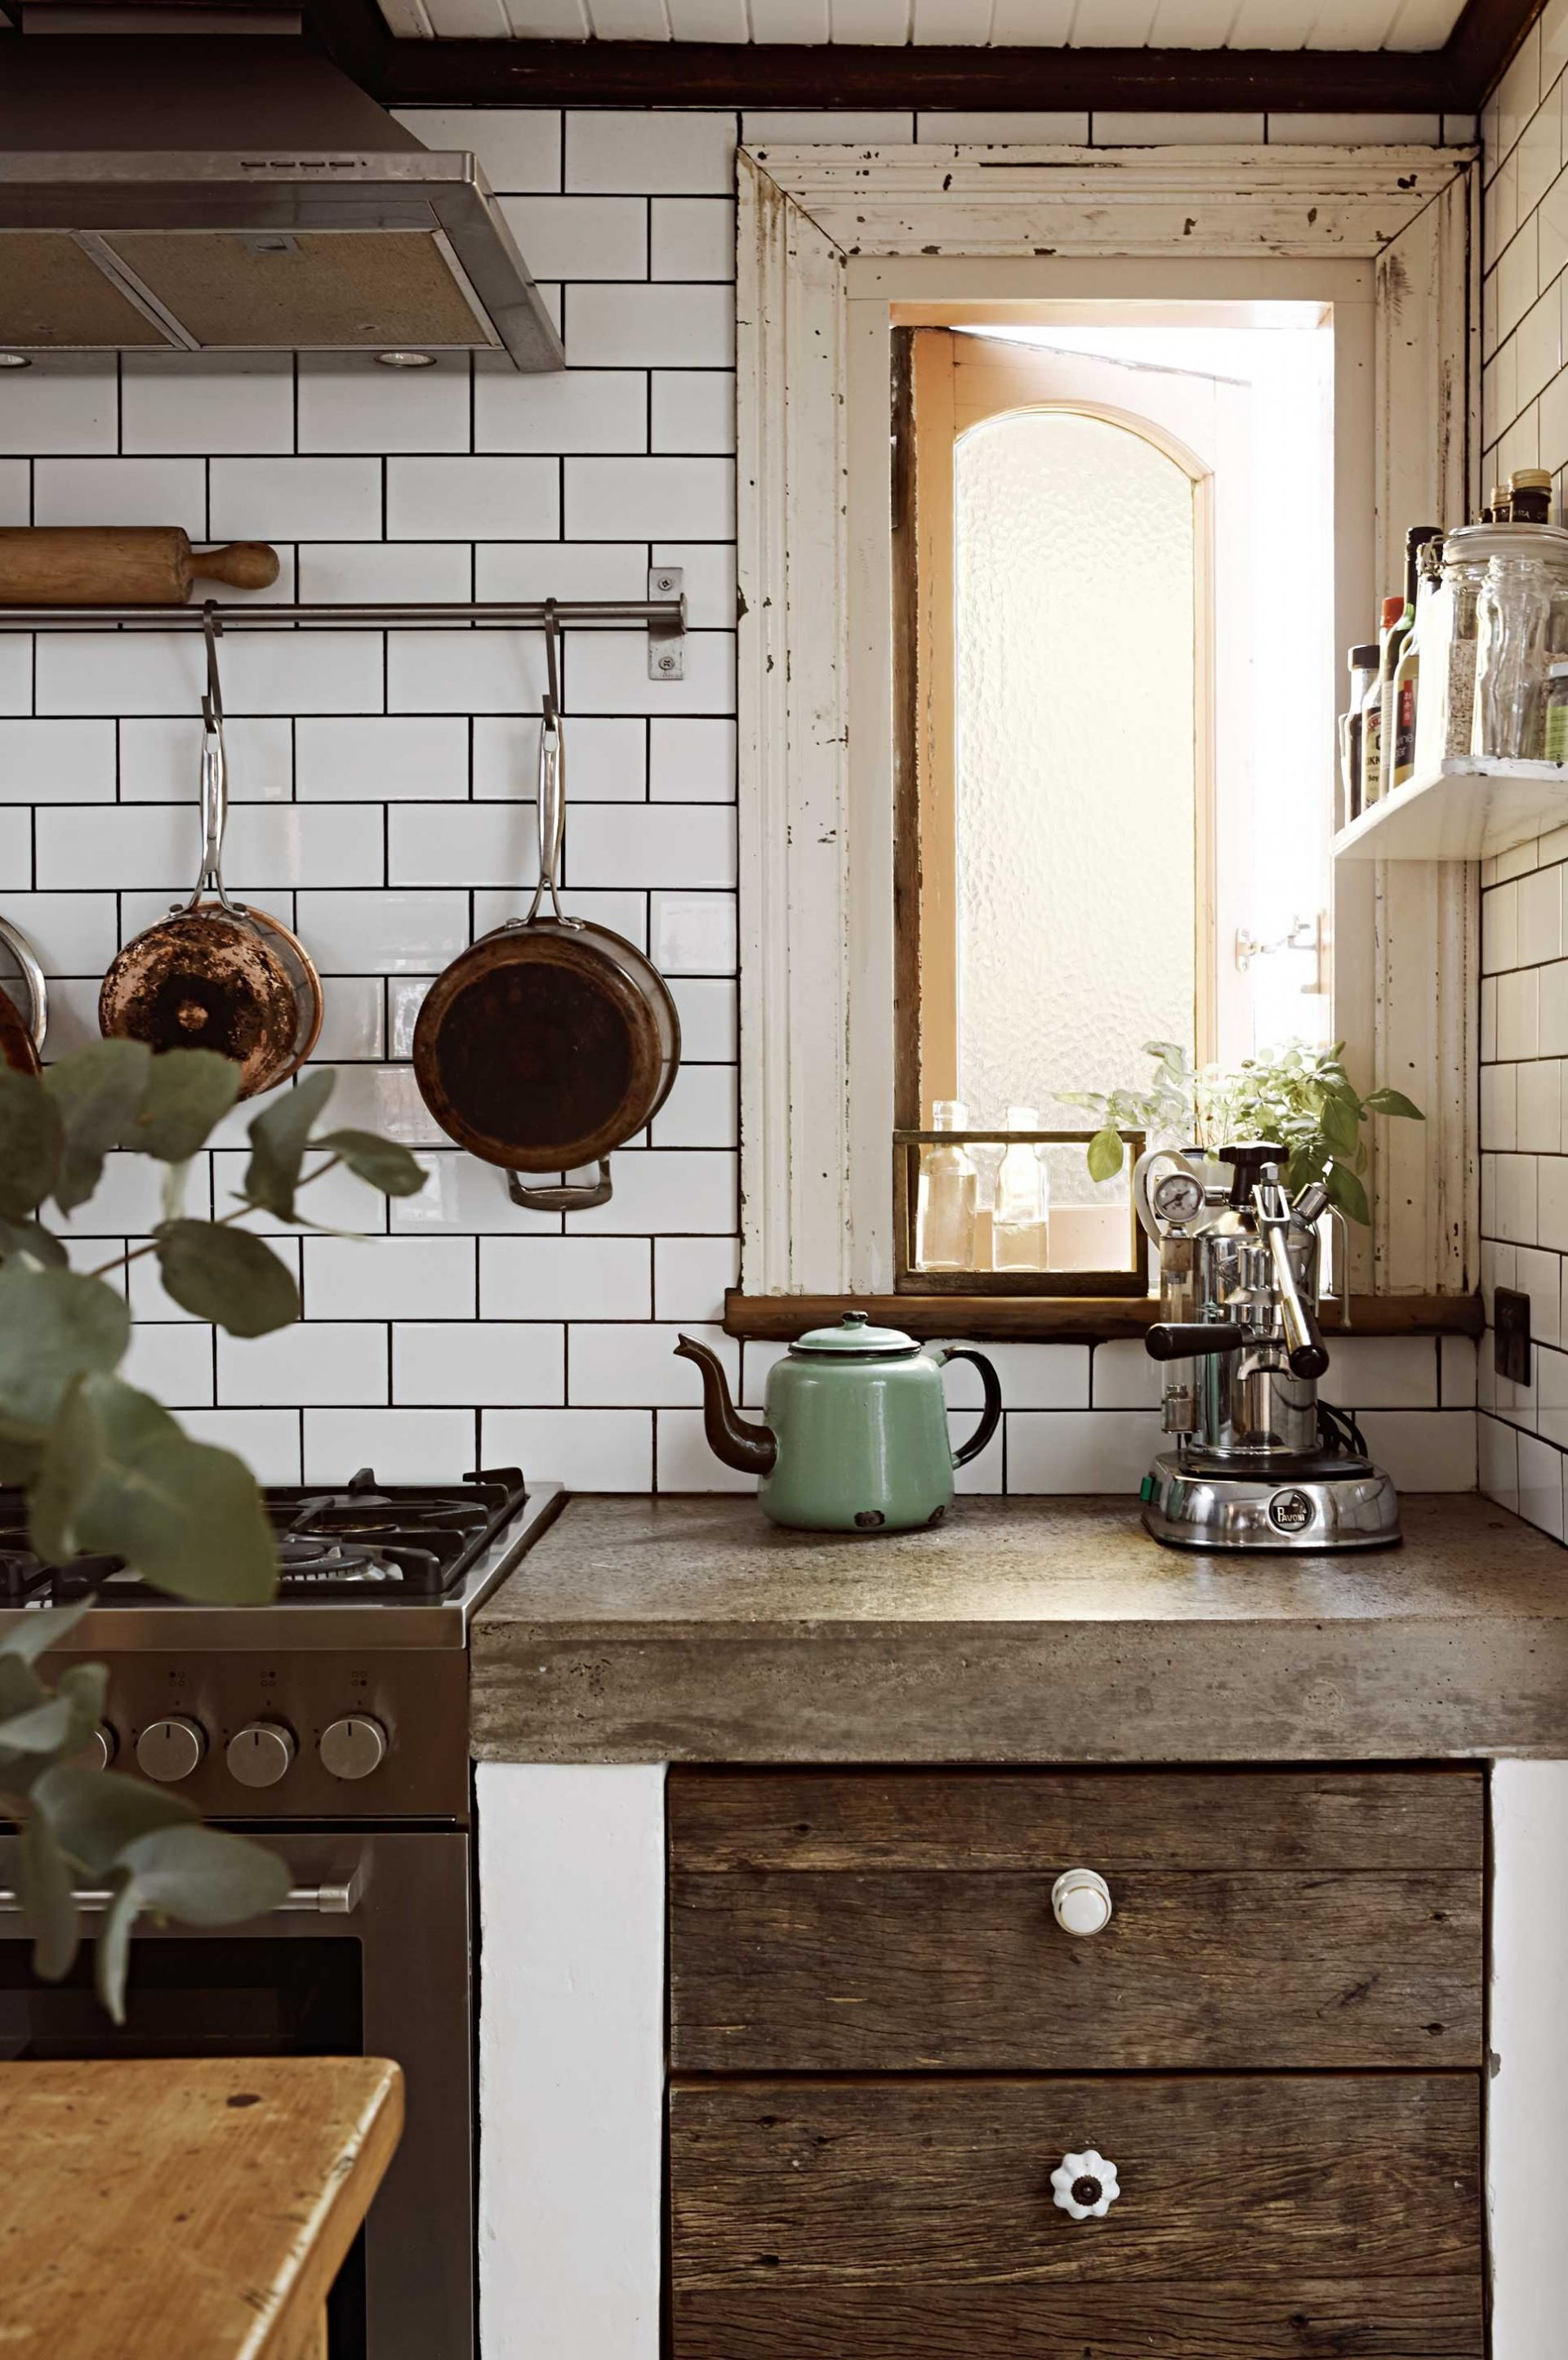 Rustic kitchen ideas from insideout com au styling by nicole valentine don photography by fiona galbraith